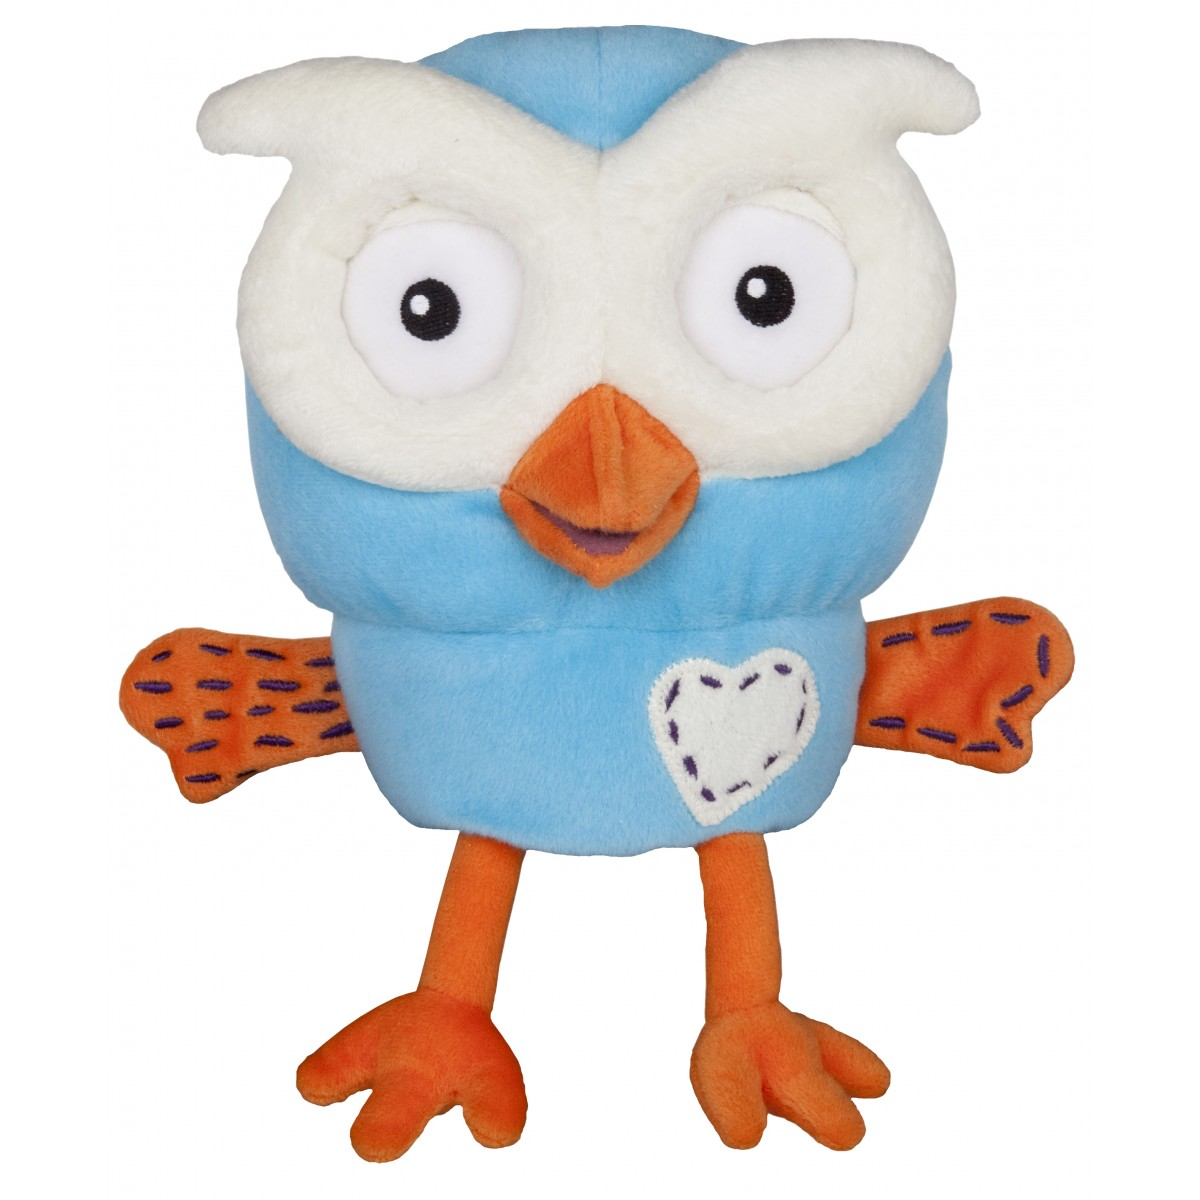 Hoot Plunger Cutter From Giggle And Hoot Hoot Made From